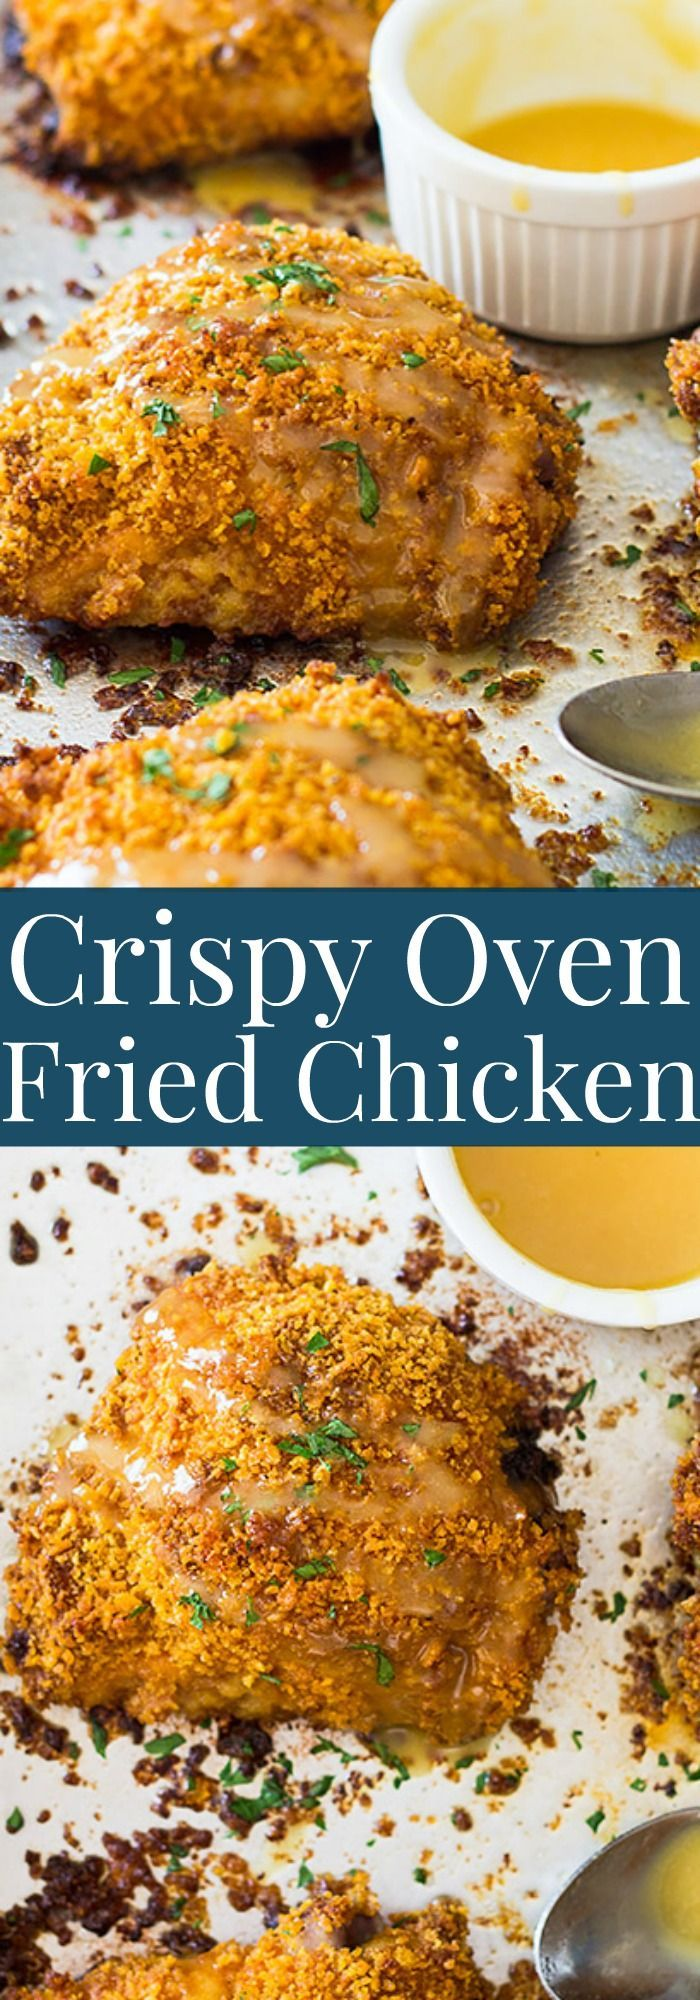 These Crispy Oven Fried Chicken Thighs are a great way to enjoy fried chicken in…